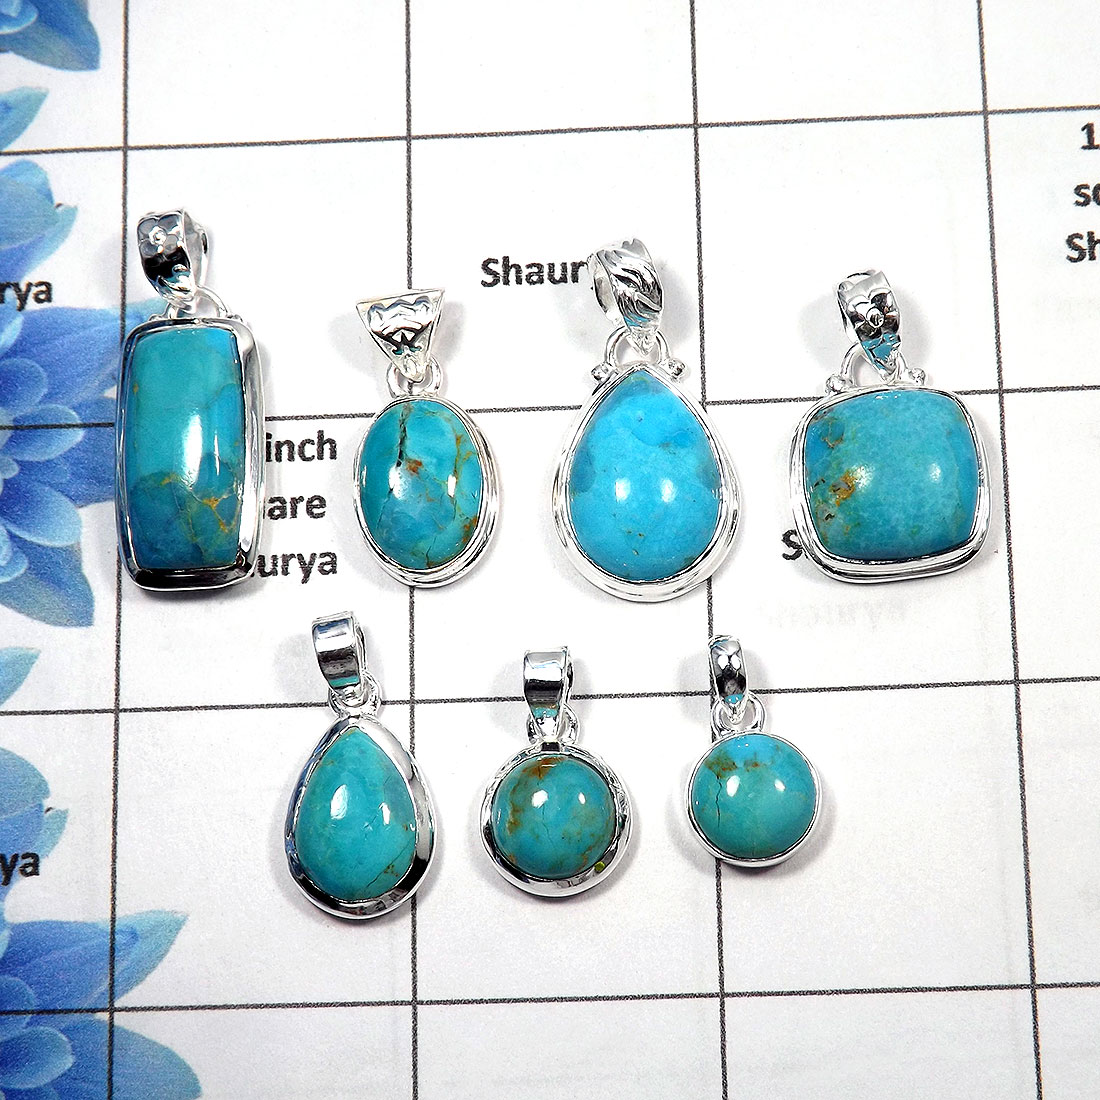 Blue Turquoise Cab - E PWL998 - 100 Gms Blue Turquoise Wholesale Lot Pendant 925 Sterling Silver Approx. 15 To 20 Pcs